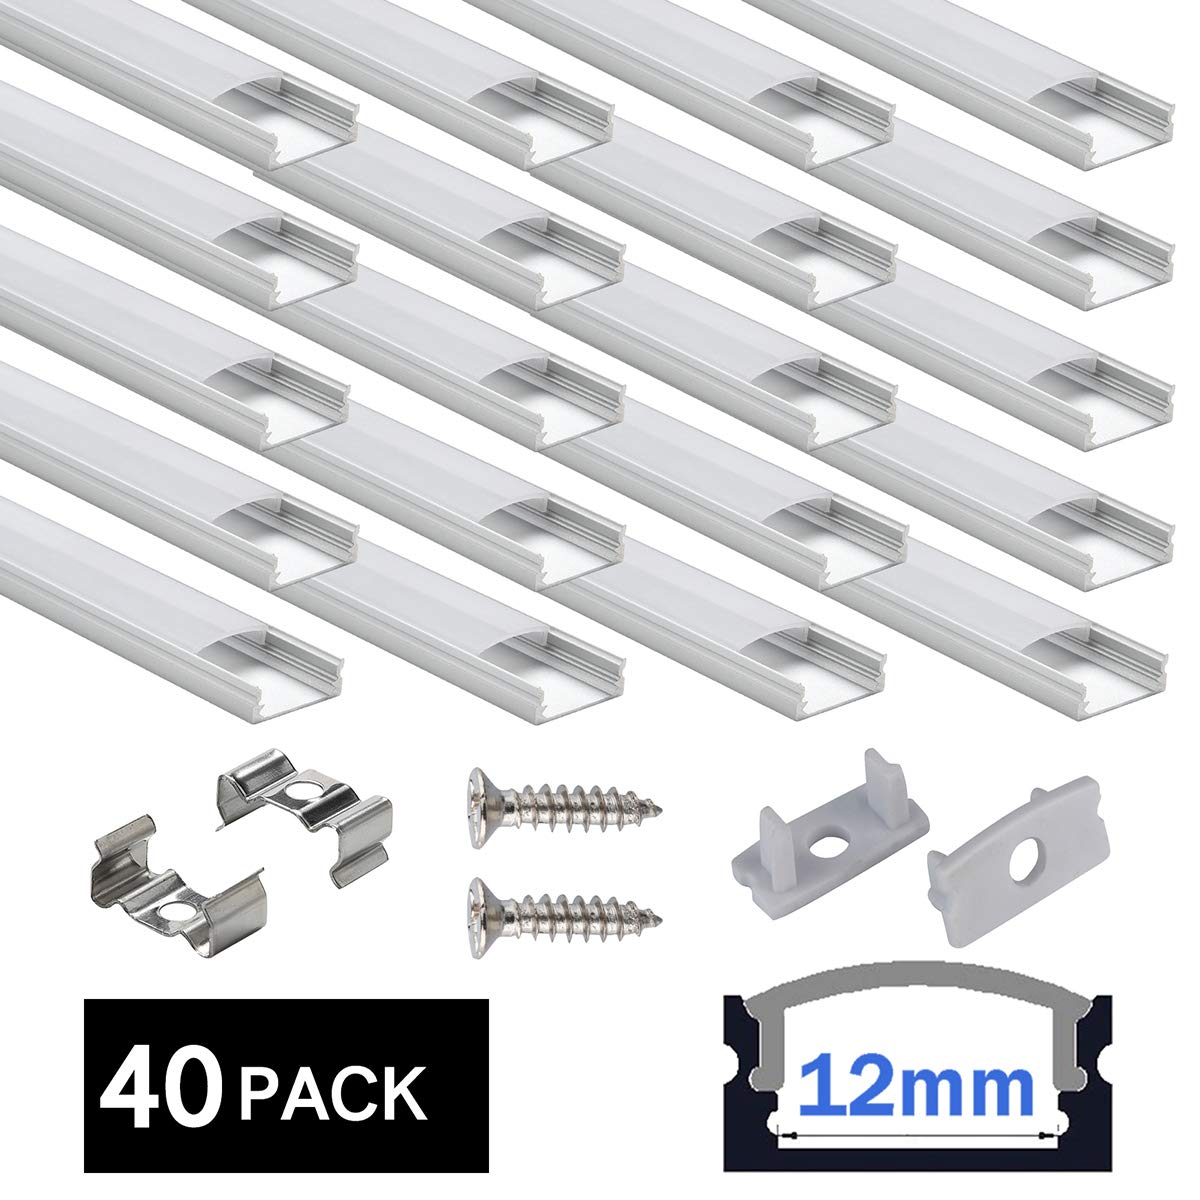 LED Aluminum Channel 40x3.3ft,LED Profile with Cover and Complete Mounting Accessories for Led Strip Light Installation by StarlandLed (Image #1)